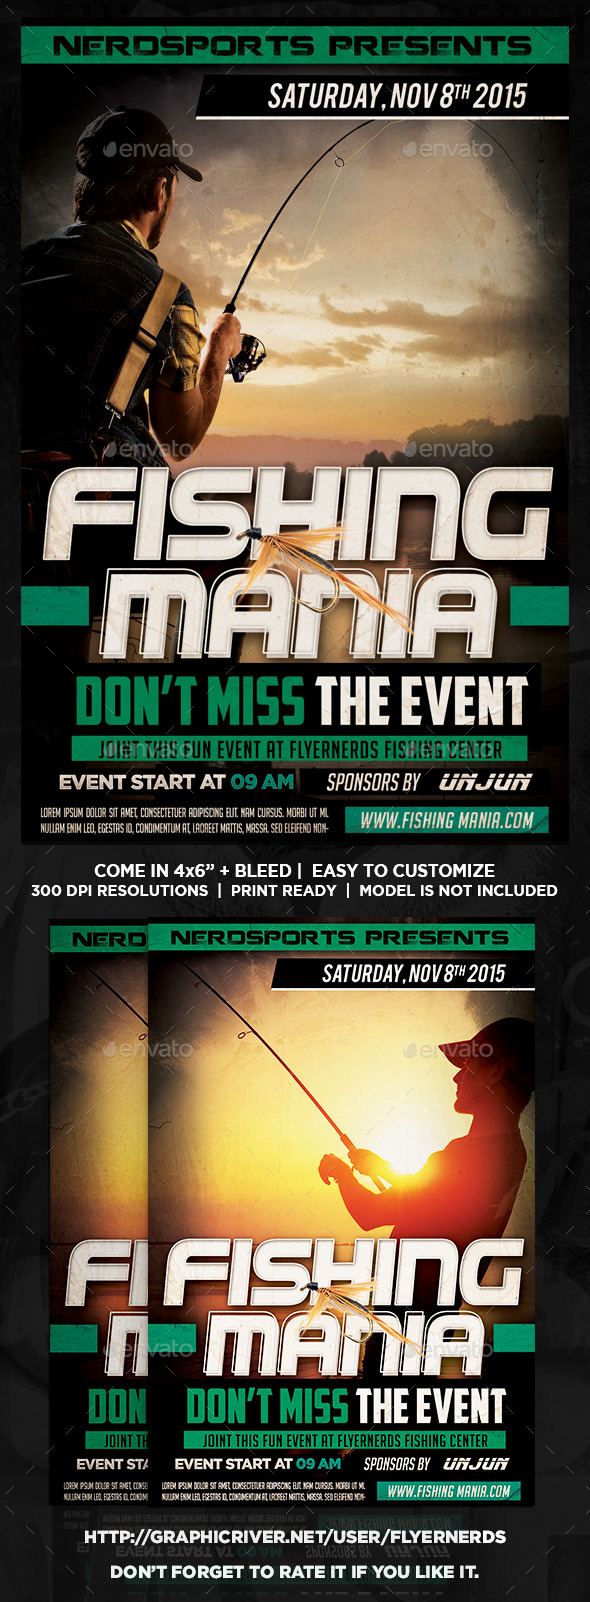 Fishing Manis Sports Flyer